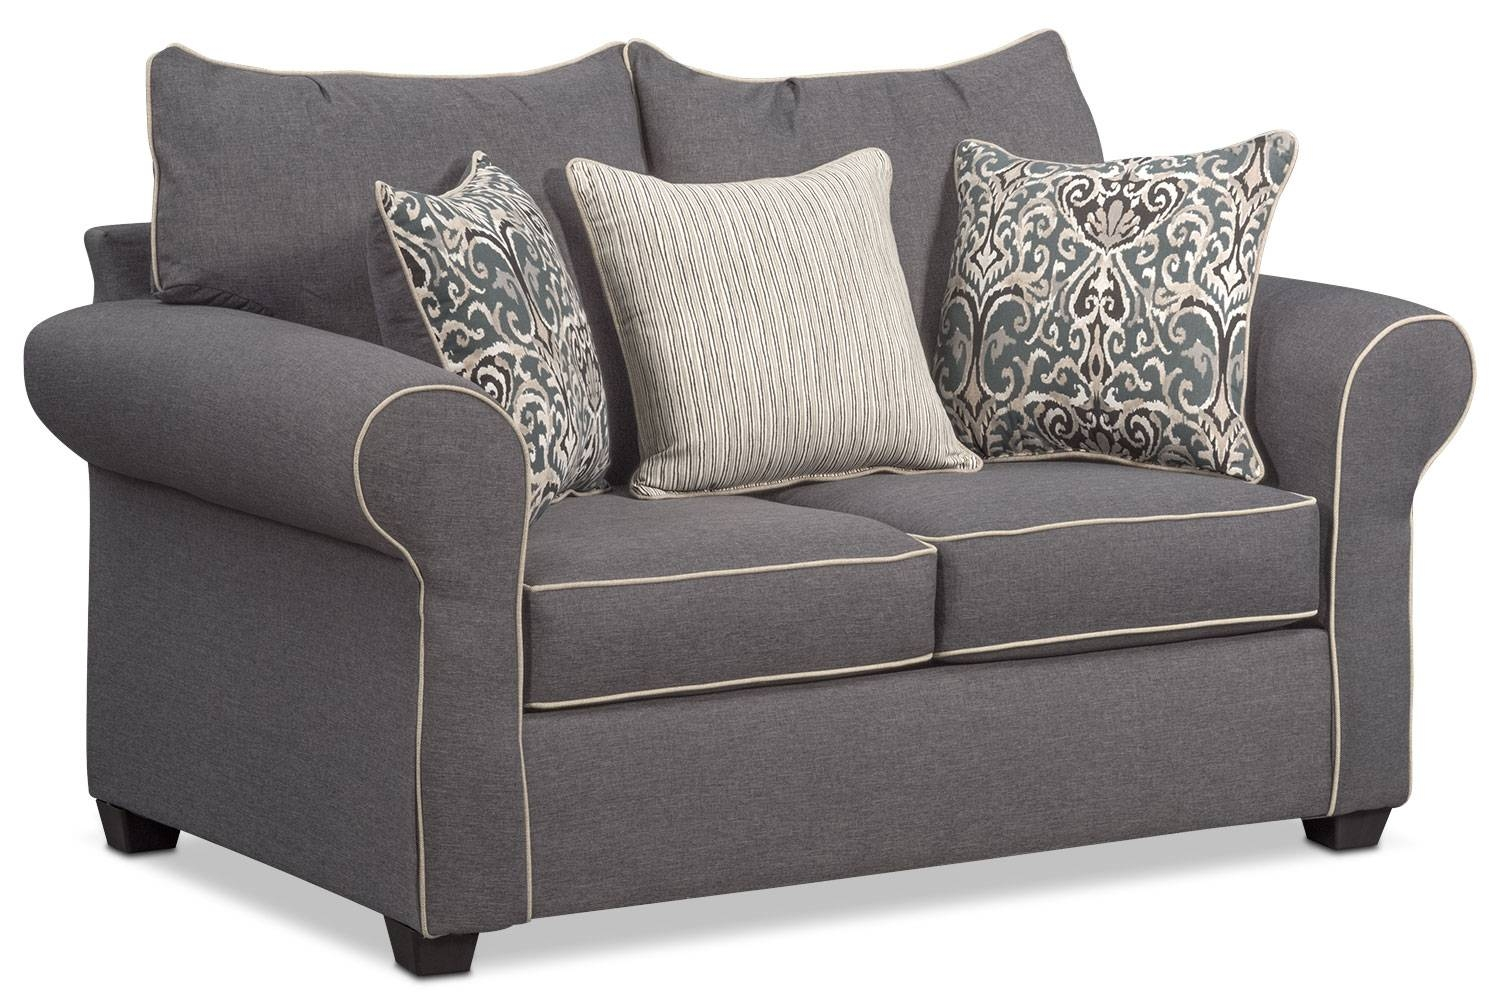 Carla Sofa, Loveseat, And Chair Set – Gray | Value City Furniture In Sofa Loveseat And Chair Set (View 8 of 30)